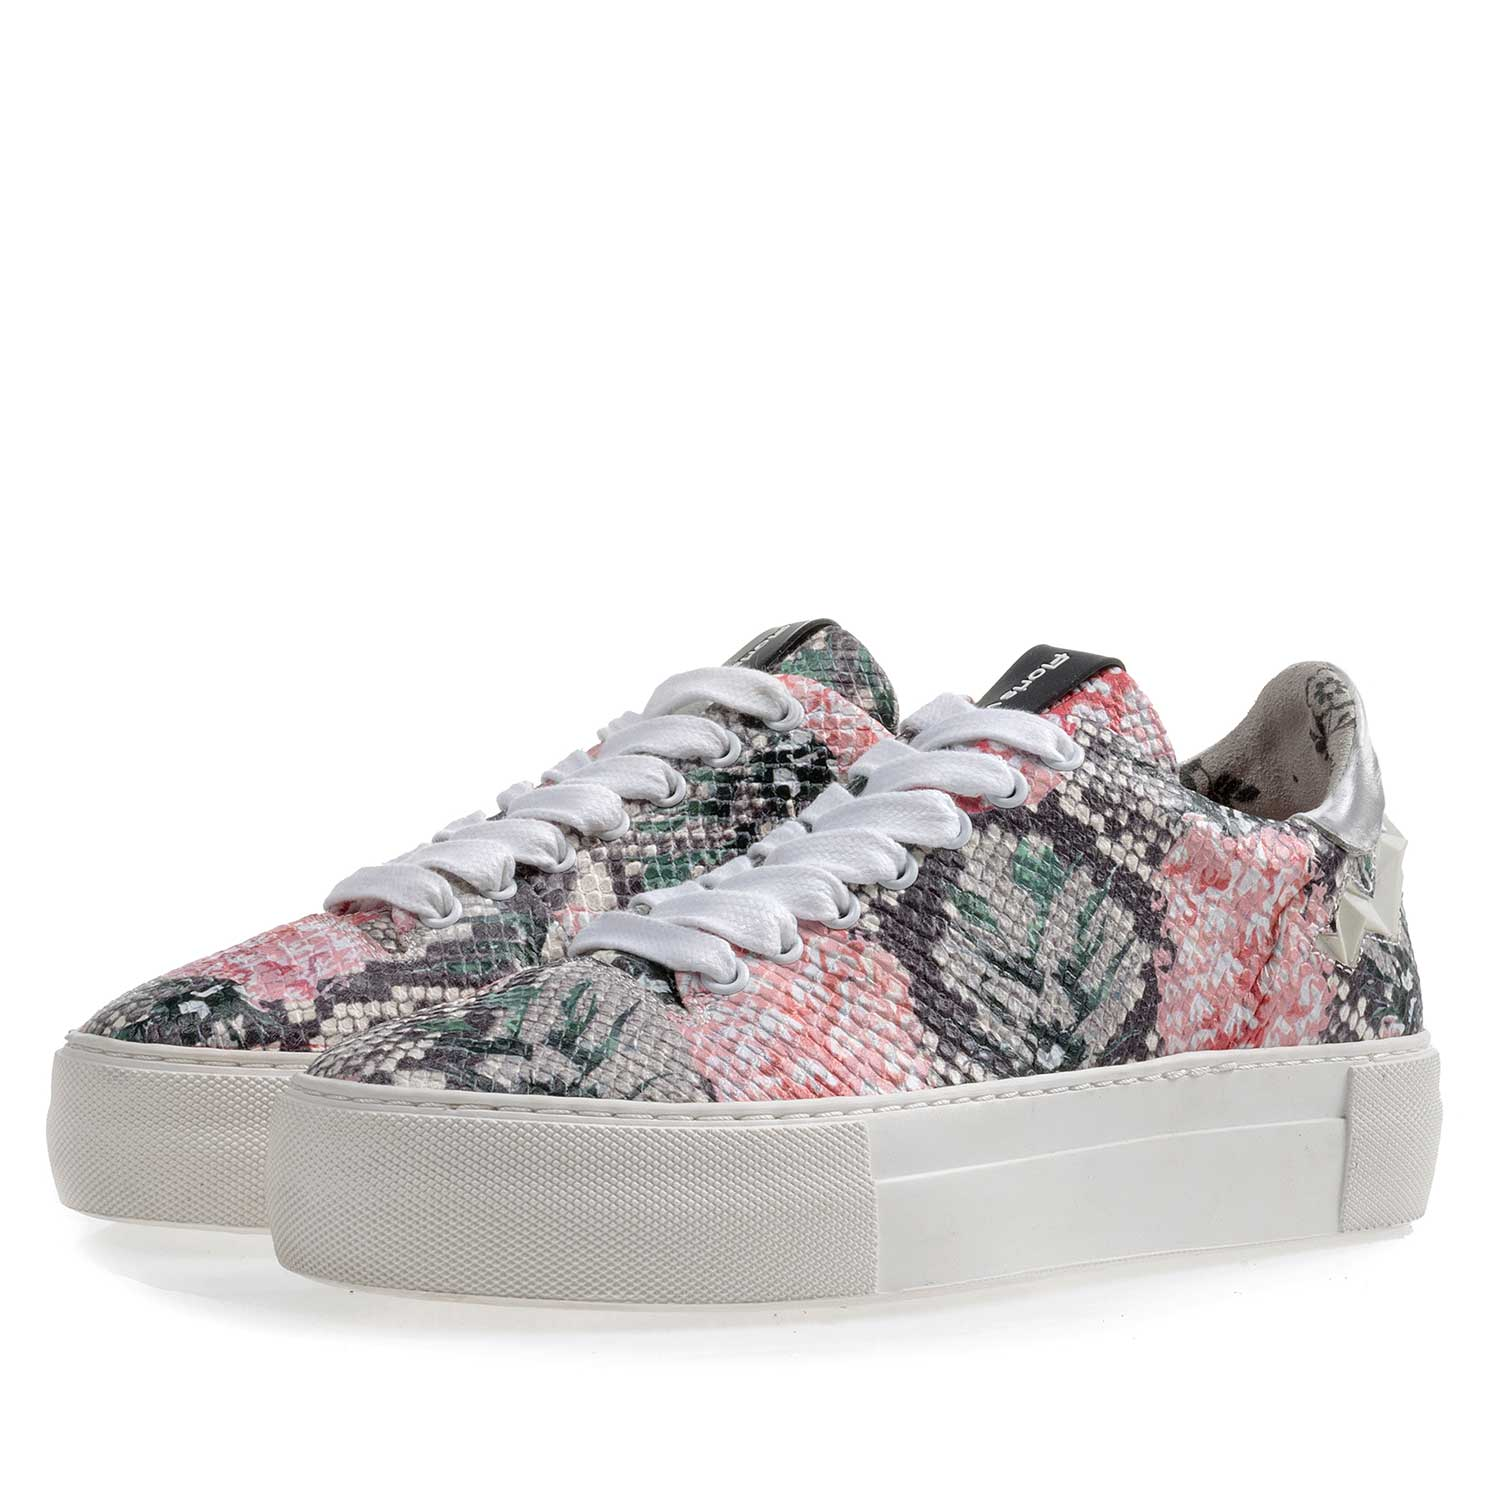 85234/03 - Multi-coloured leather sneaker with printed motif